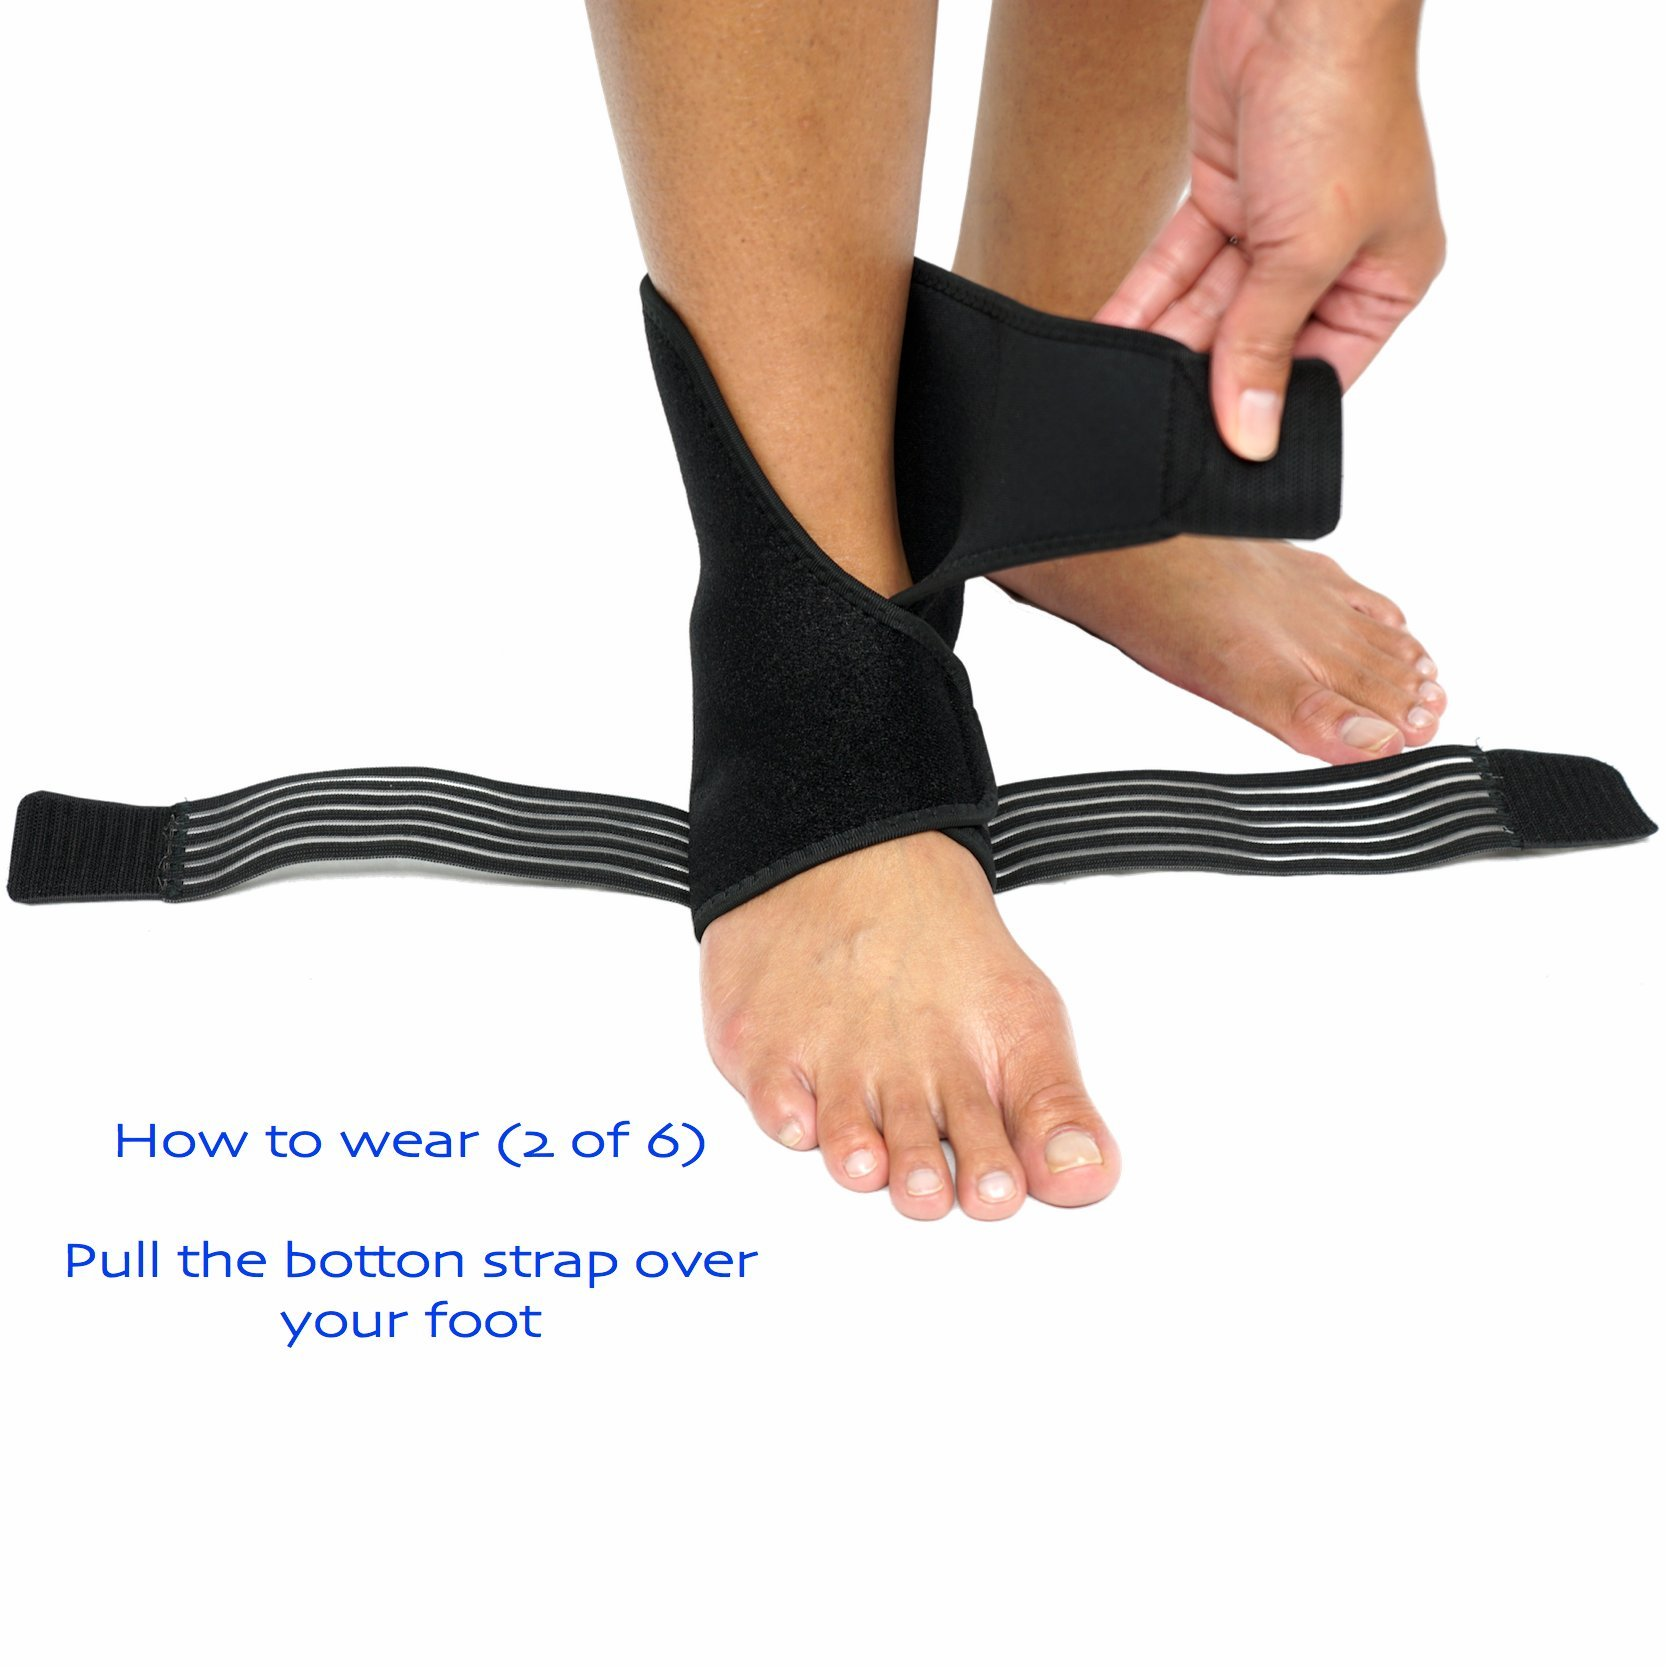 Ankle Brace (PAIR) with Bonus Straps, for Ankle Support, Plantar Fasciitis, or Swollen Ankles, One Size Fits Most, By ZSX SPORT (Foot Size - Reg) by ZSX (Image #4)